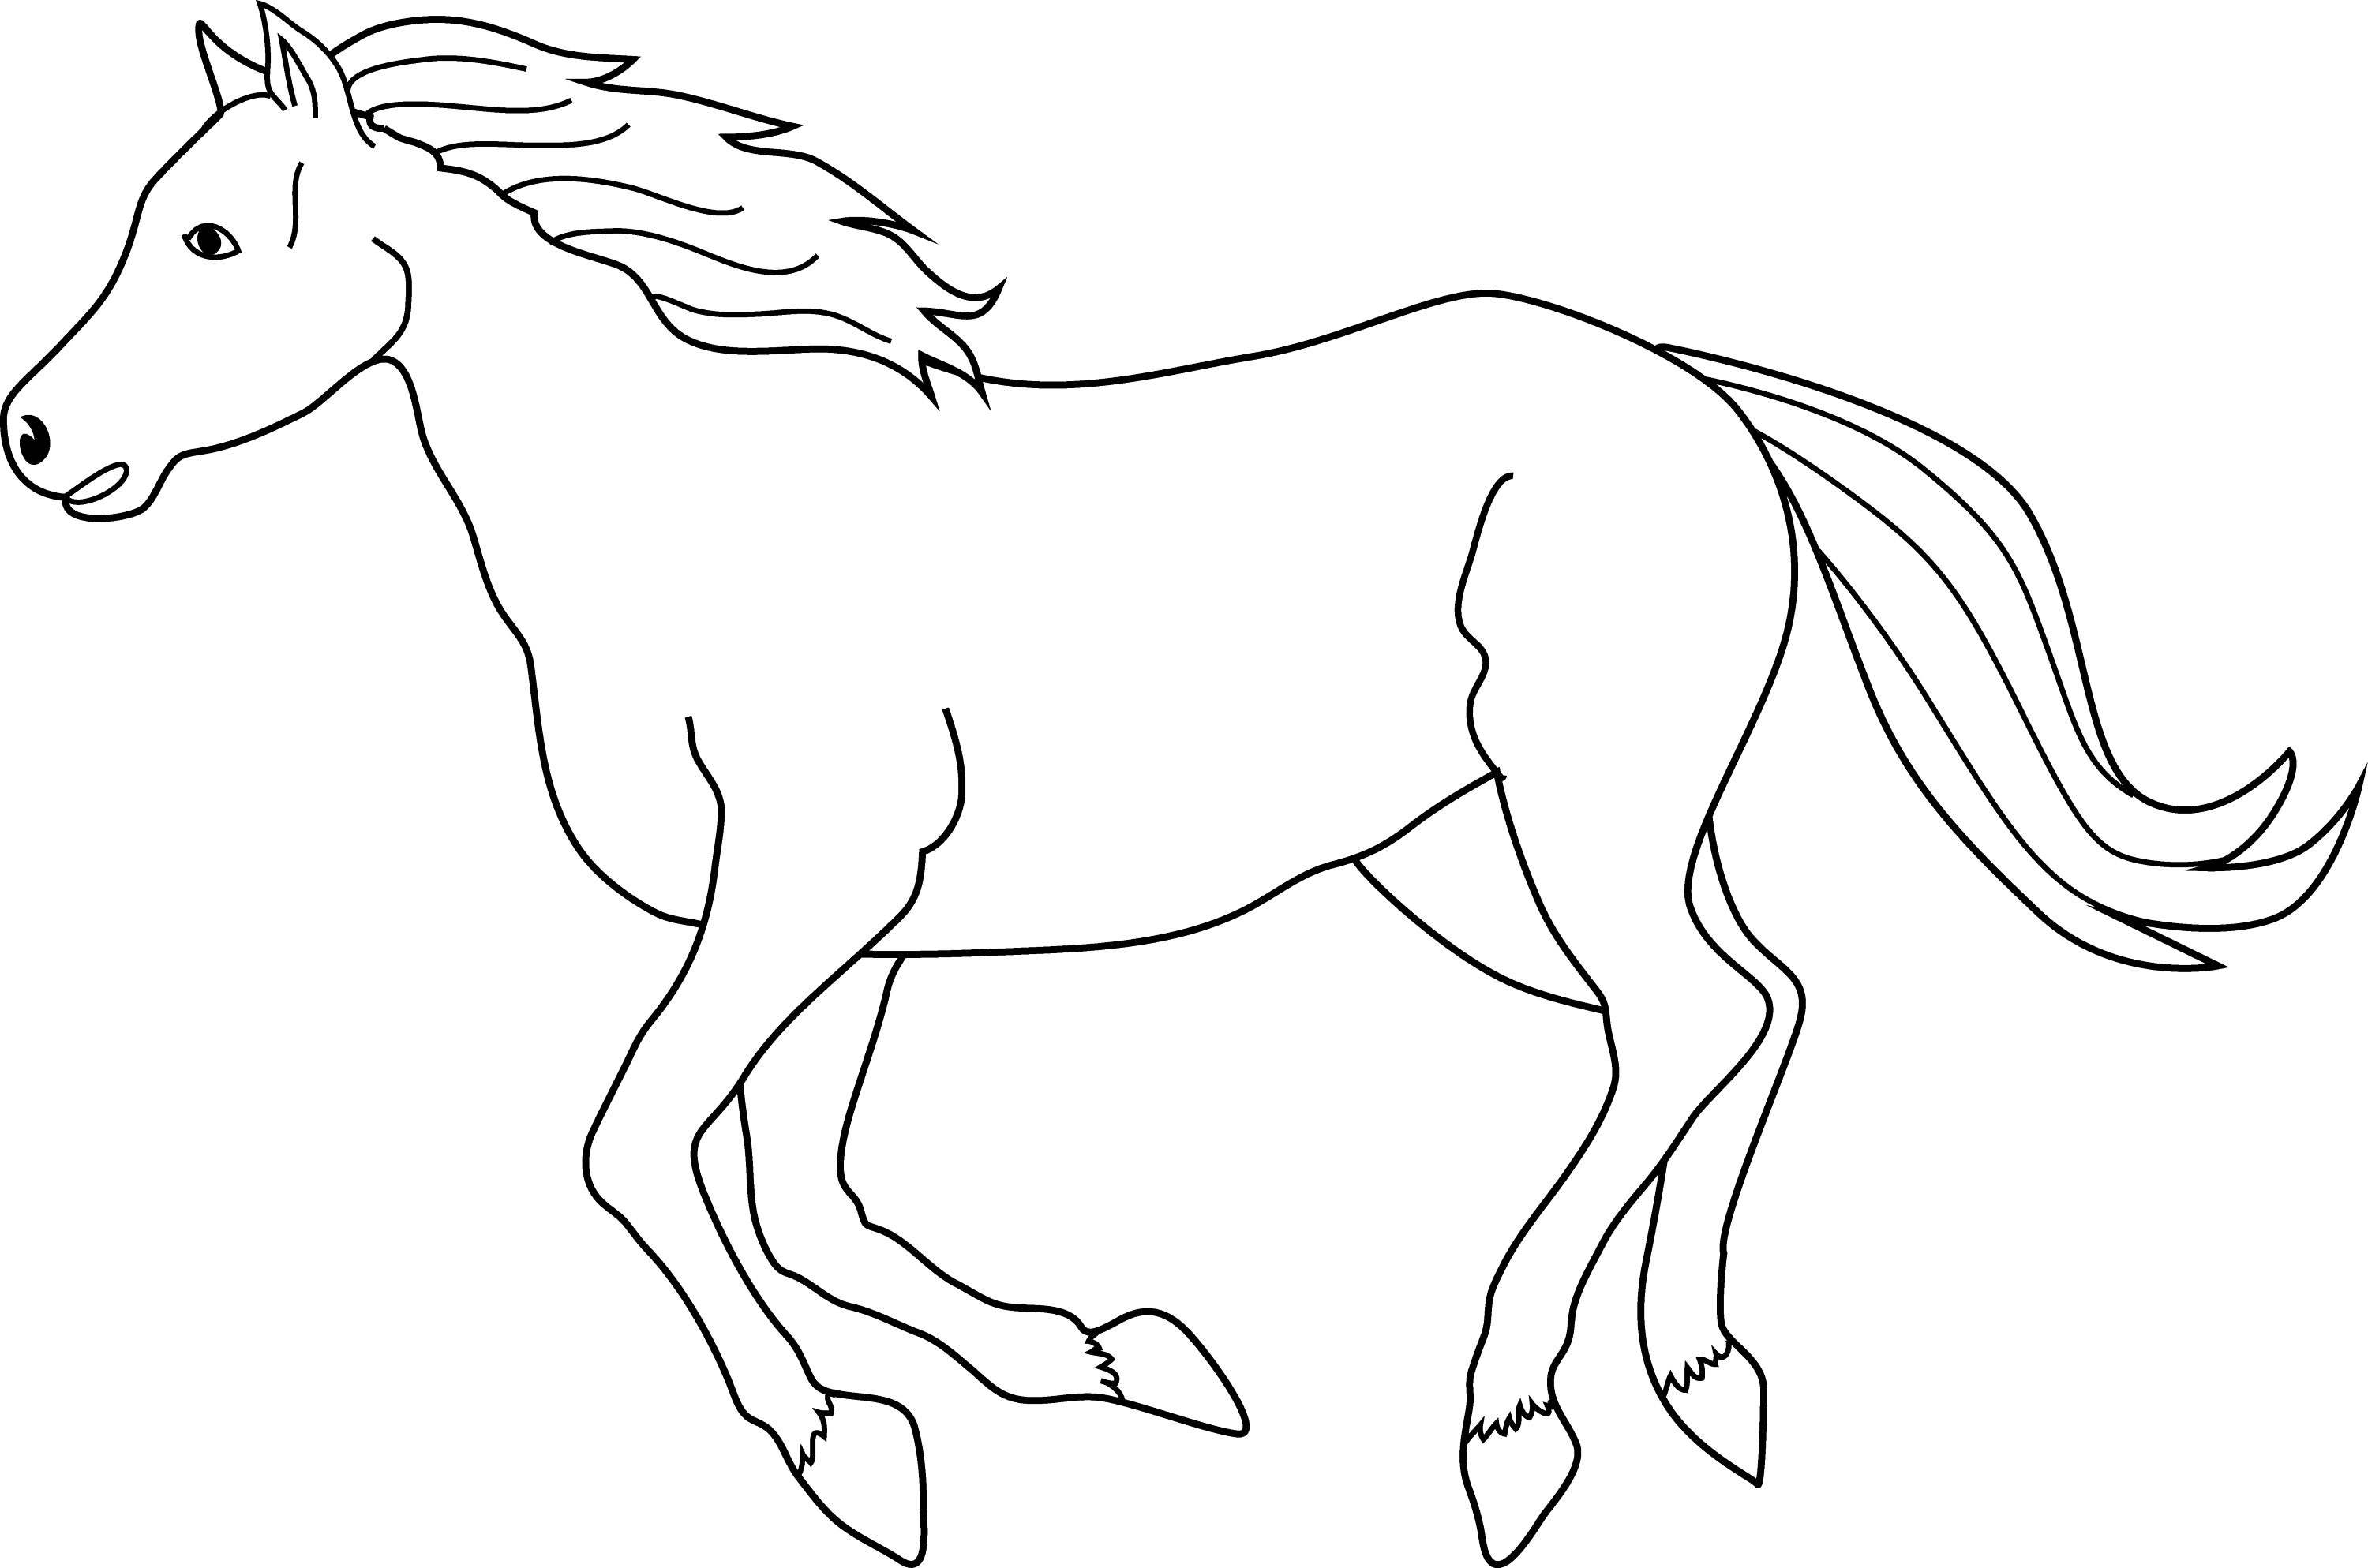 coloring picture of horse coloring picture of horse coloring horse of picture